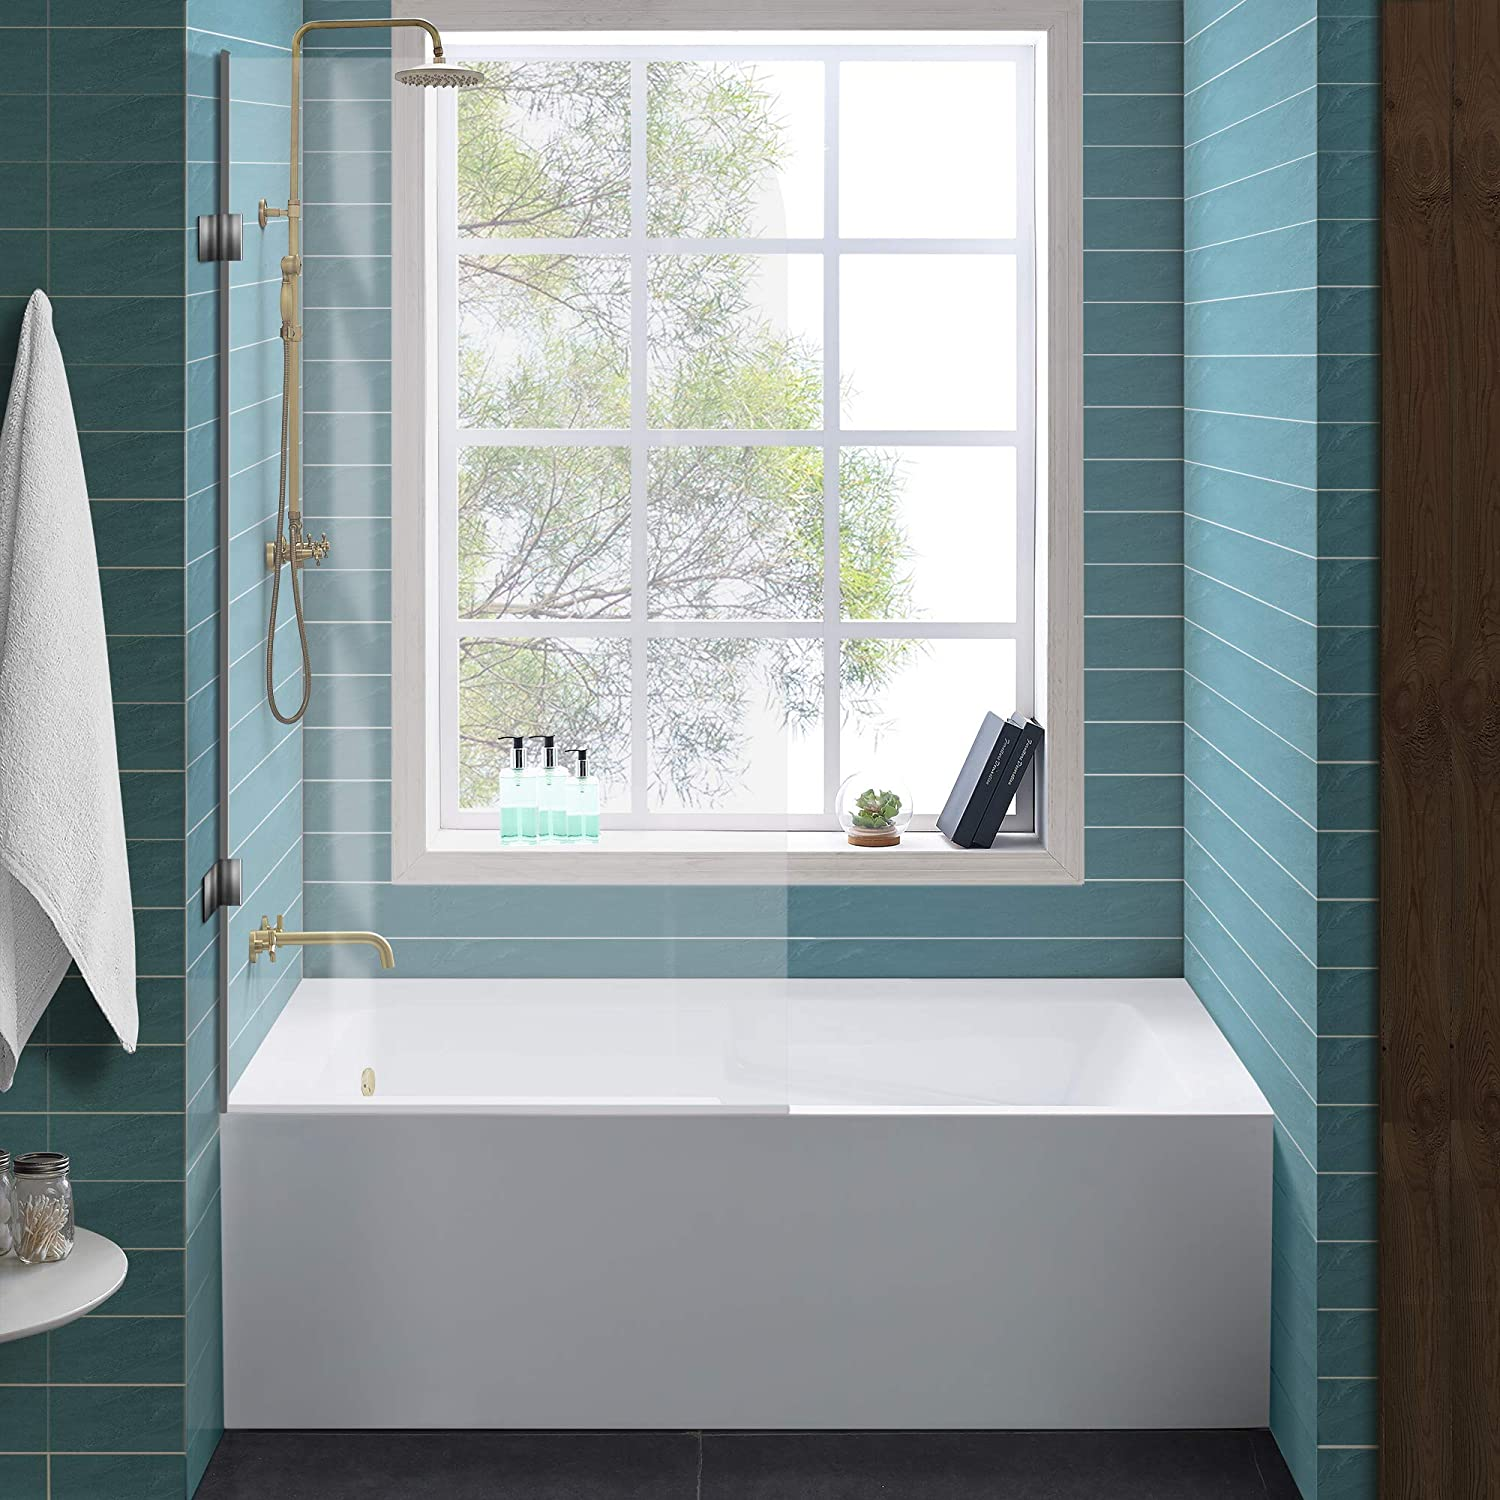 Swiss Madison Well Made Forever Voltaire New product type SM-AB542 Max 72% OFF Tub 60 Alcove